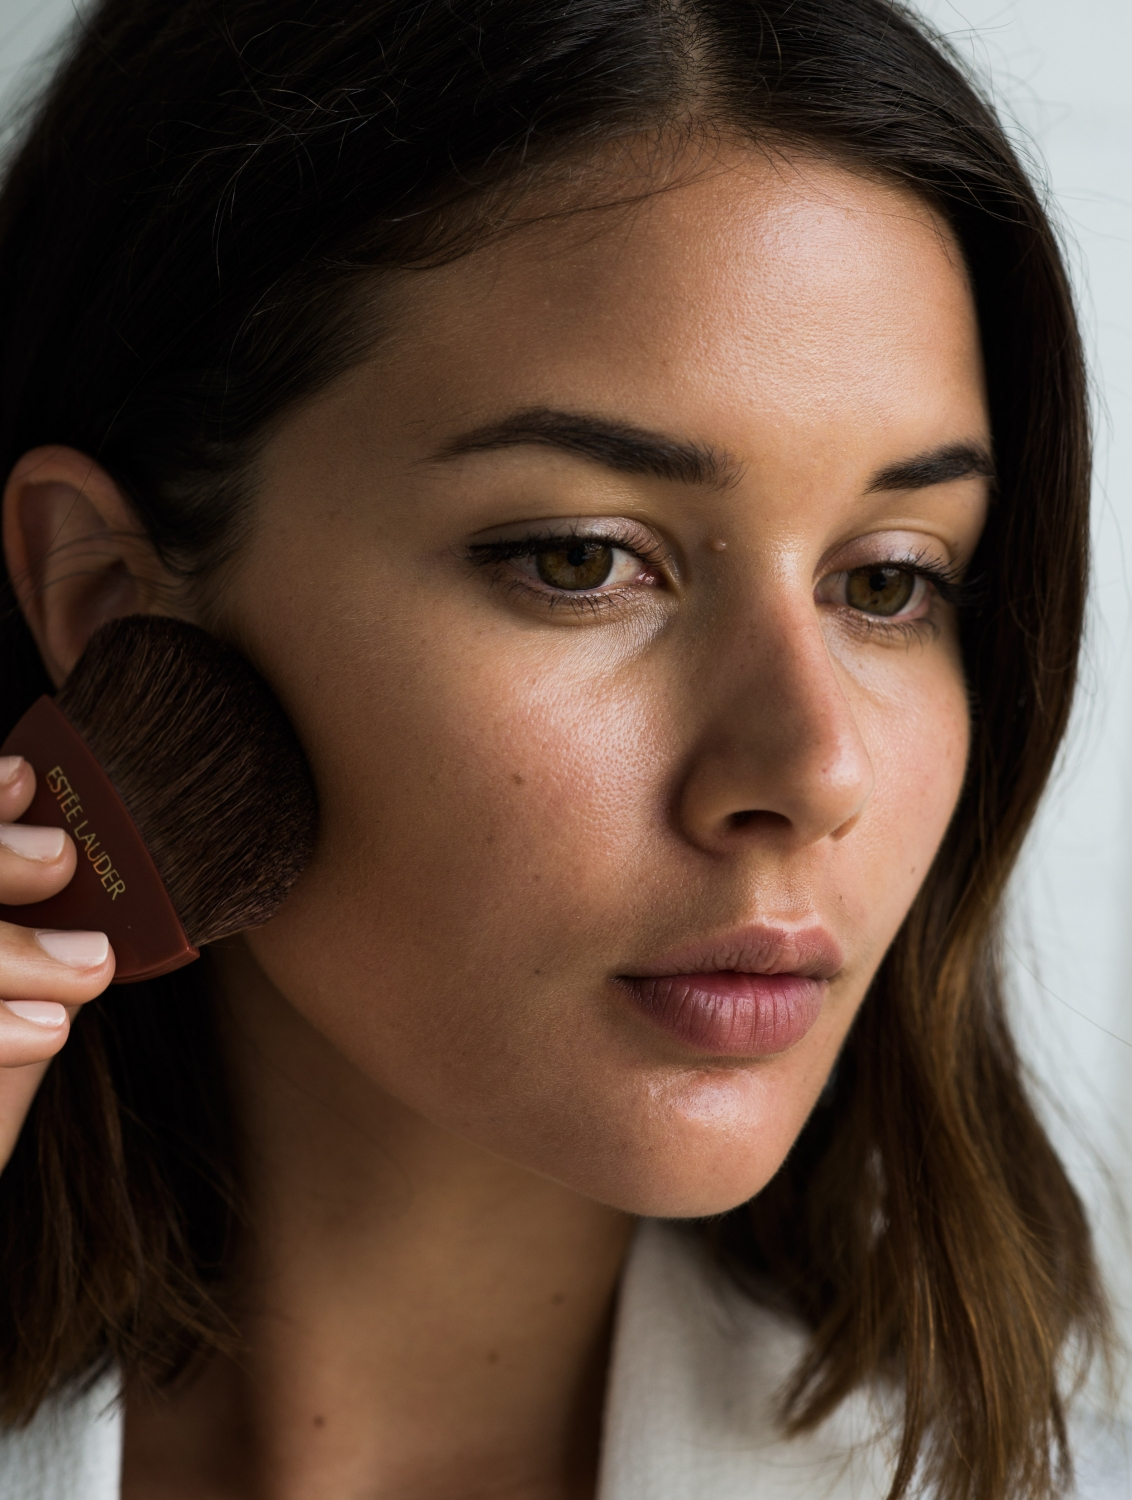 Estee Lauder holiday skin. How to get the most out of your travel makeup